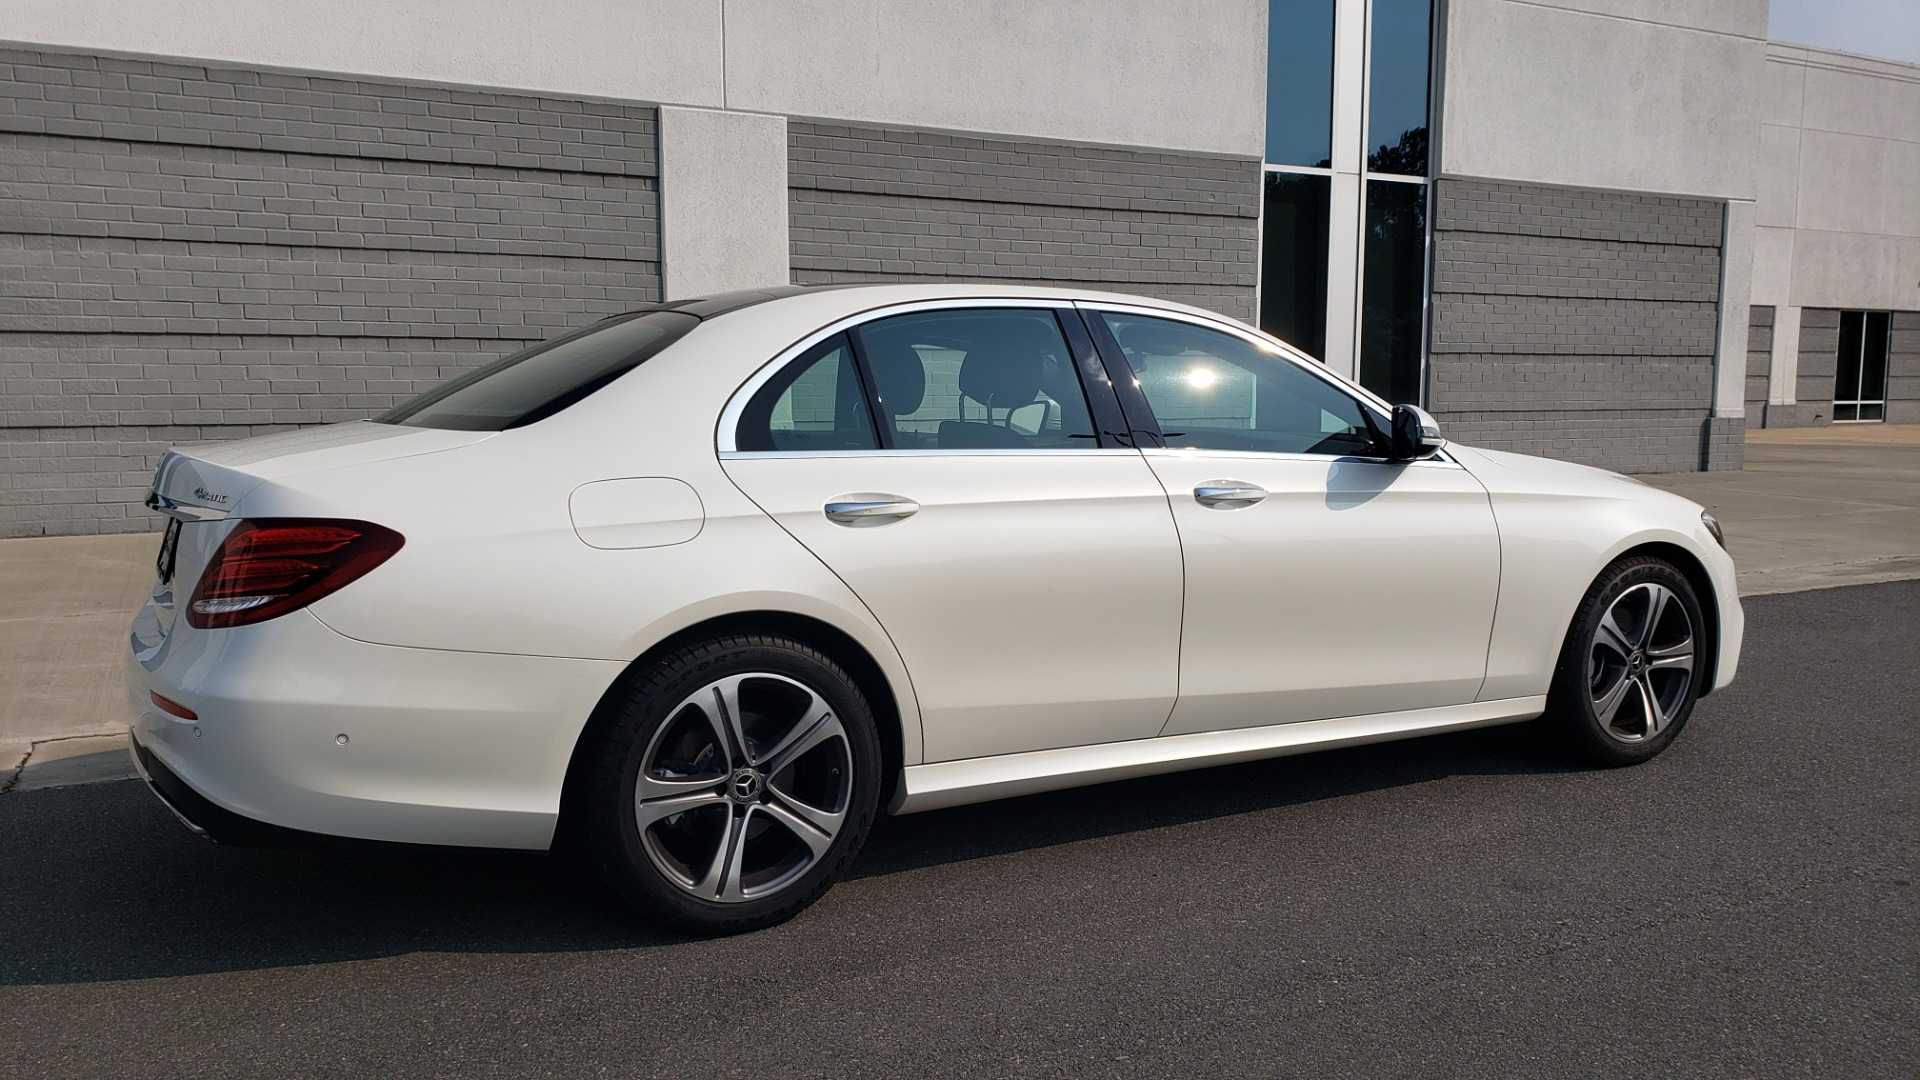 Used 2018 Mercedes-Benz E-CLASS E 300 4MATIC / PREMIUM / NAV / PANO-ROOF / BURMESTER / REARVIEW for sale $41,995 at Formula Imports in Charlotte NC 28227 5